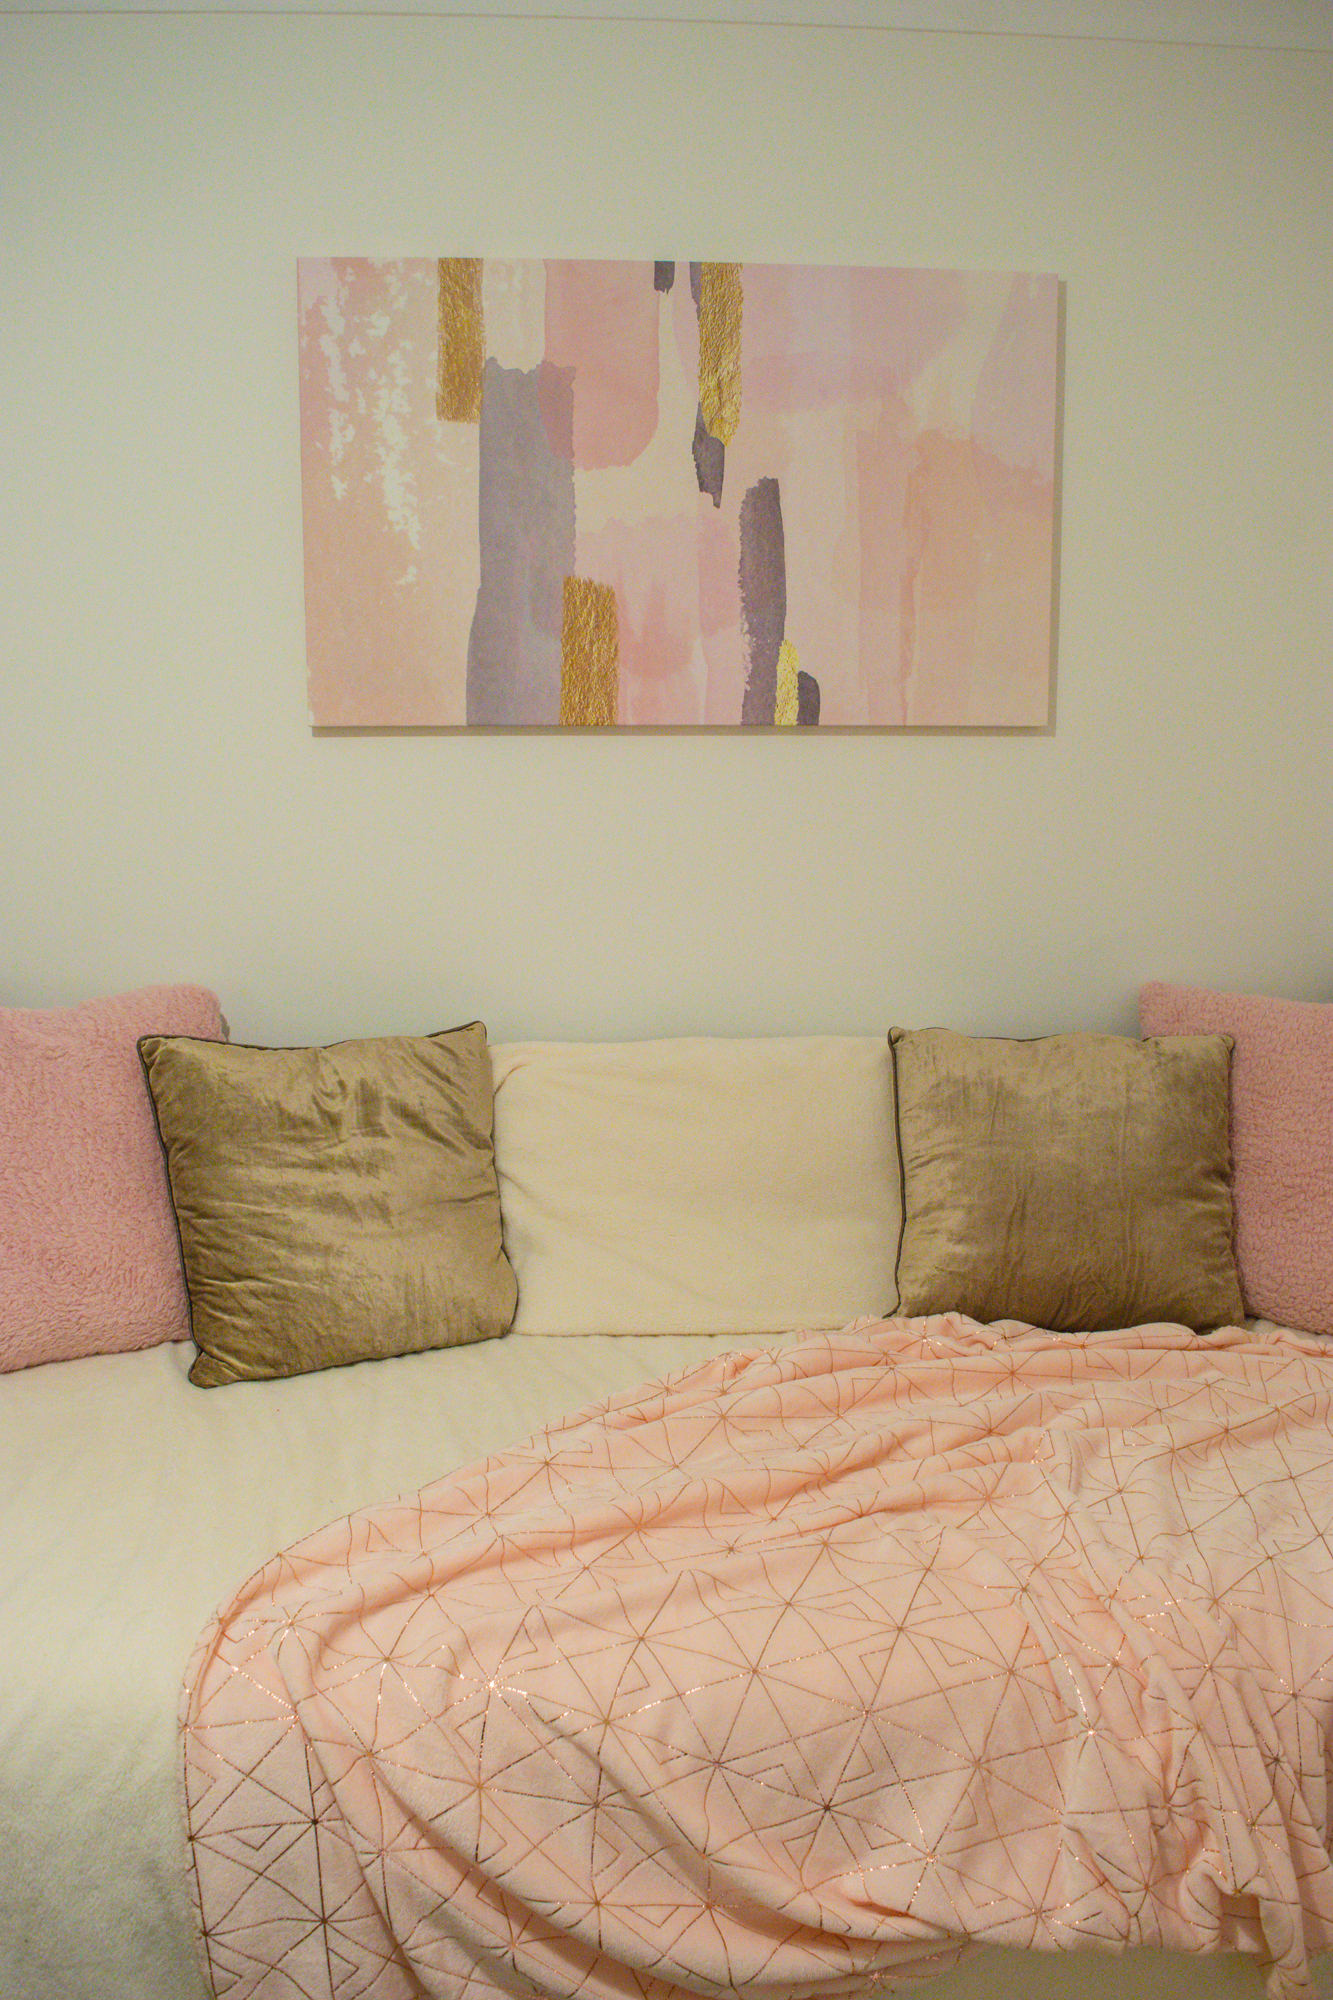 Pink and gold printed canvas above a black framed bed.